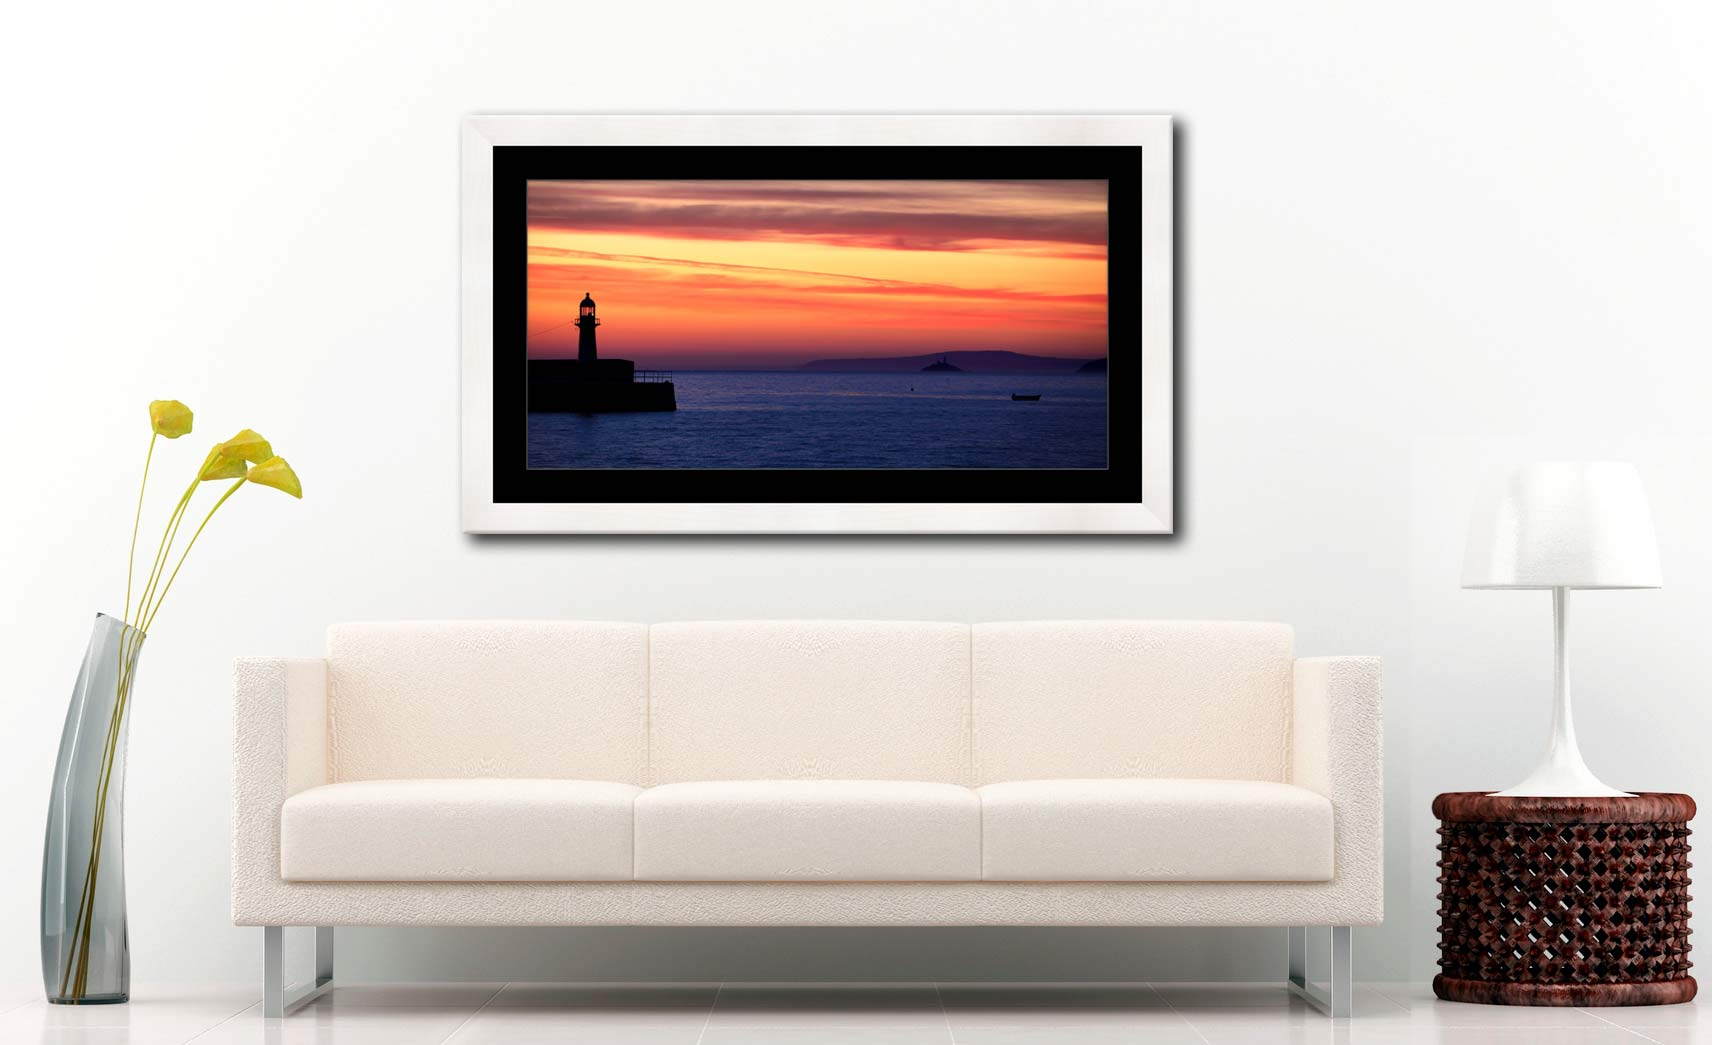 Dawn Harbour St Ives Lighthouse - Framed Print with Mount on Wall